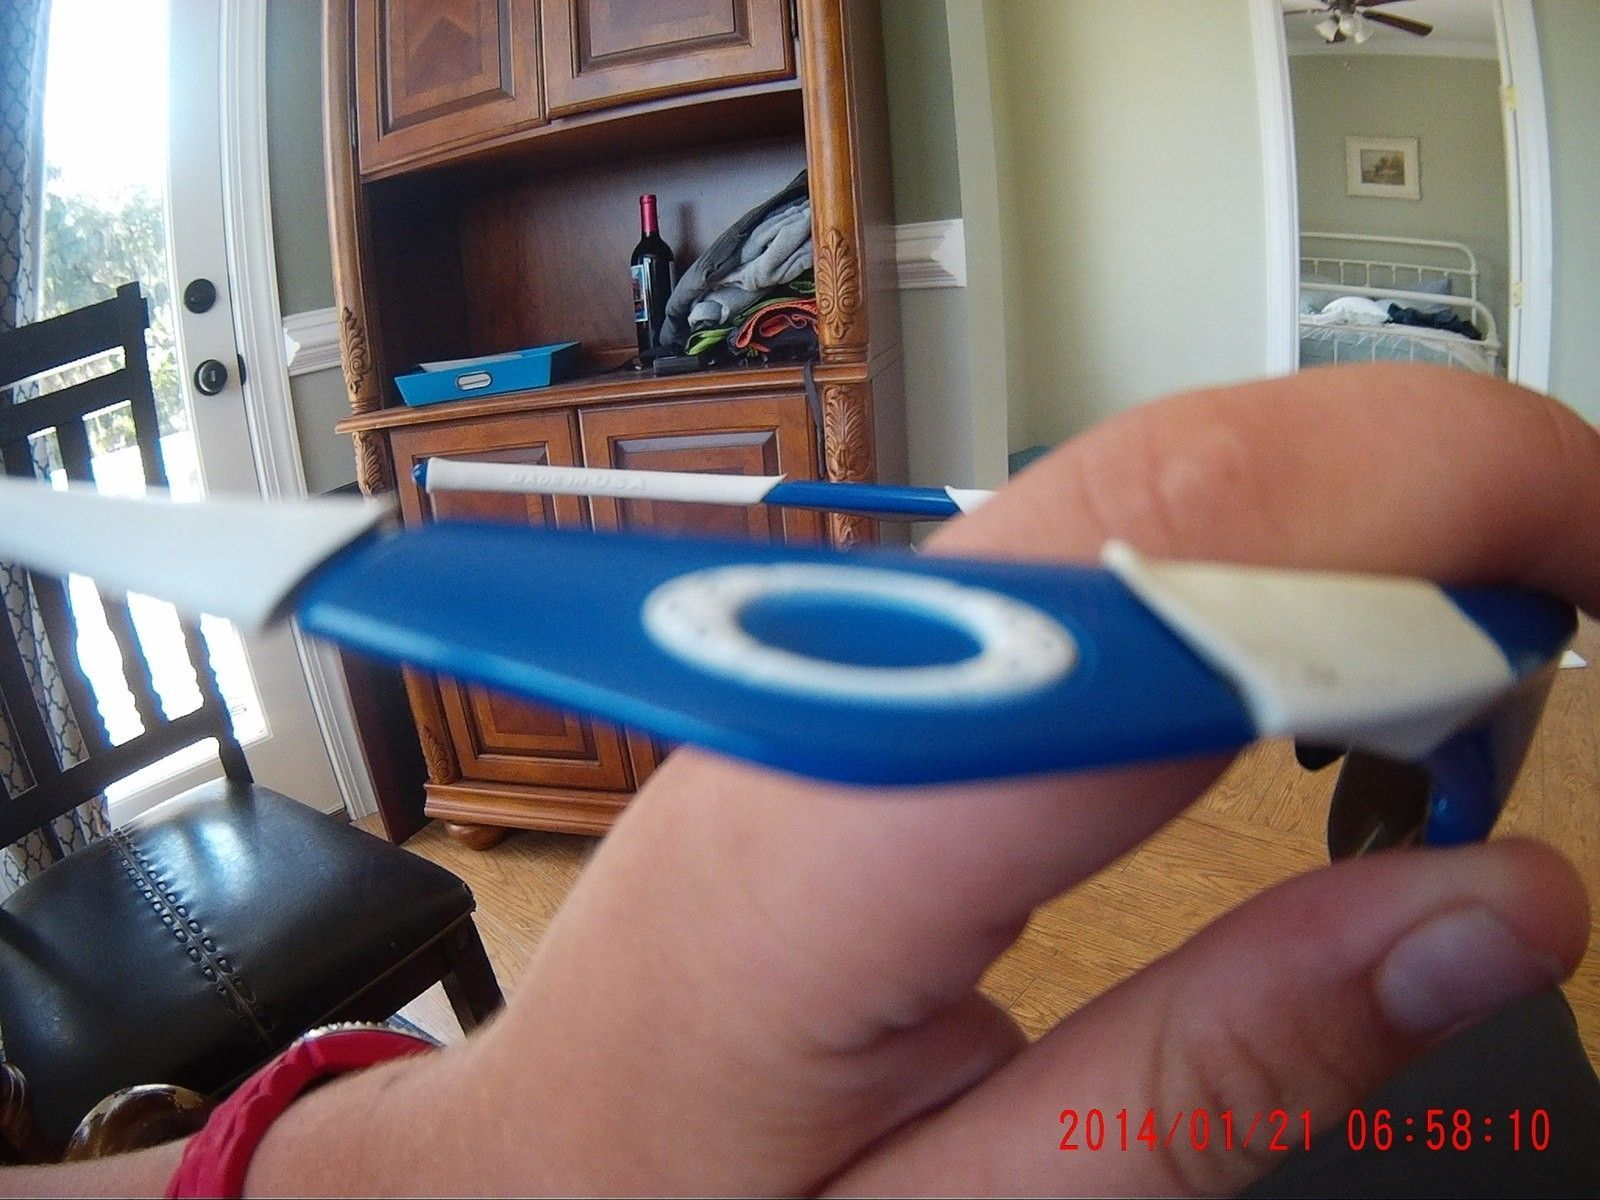 Found at the beach any value? they say oakley??? - 06580002.JPG